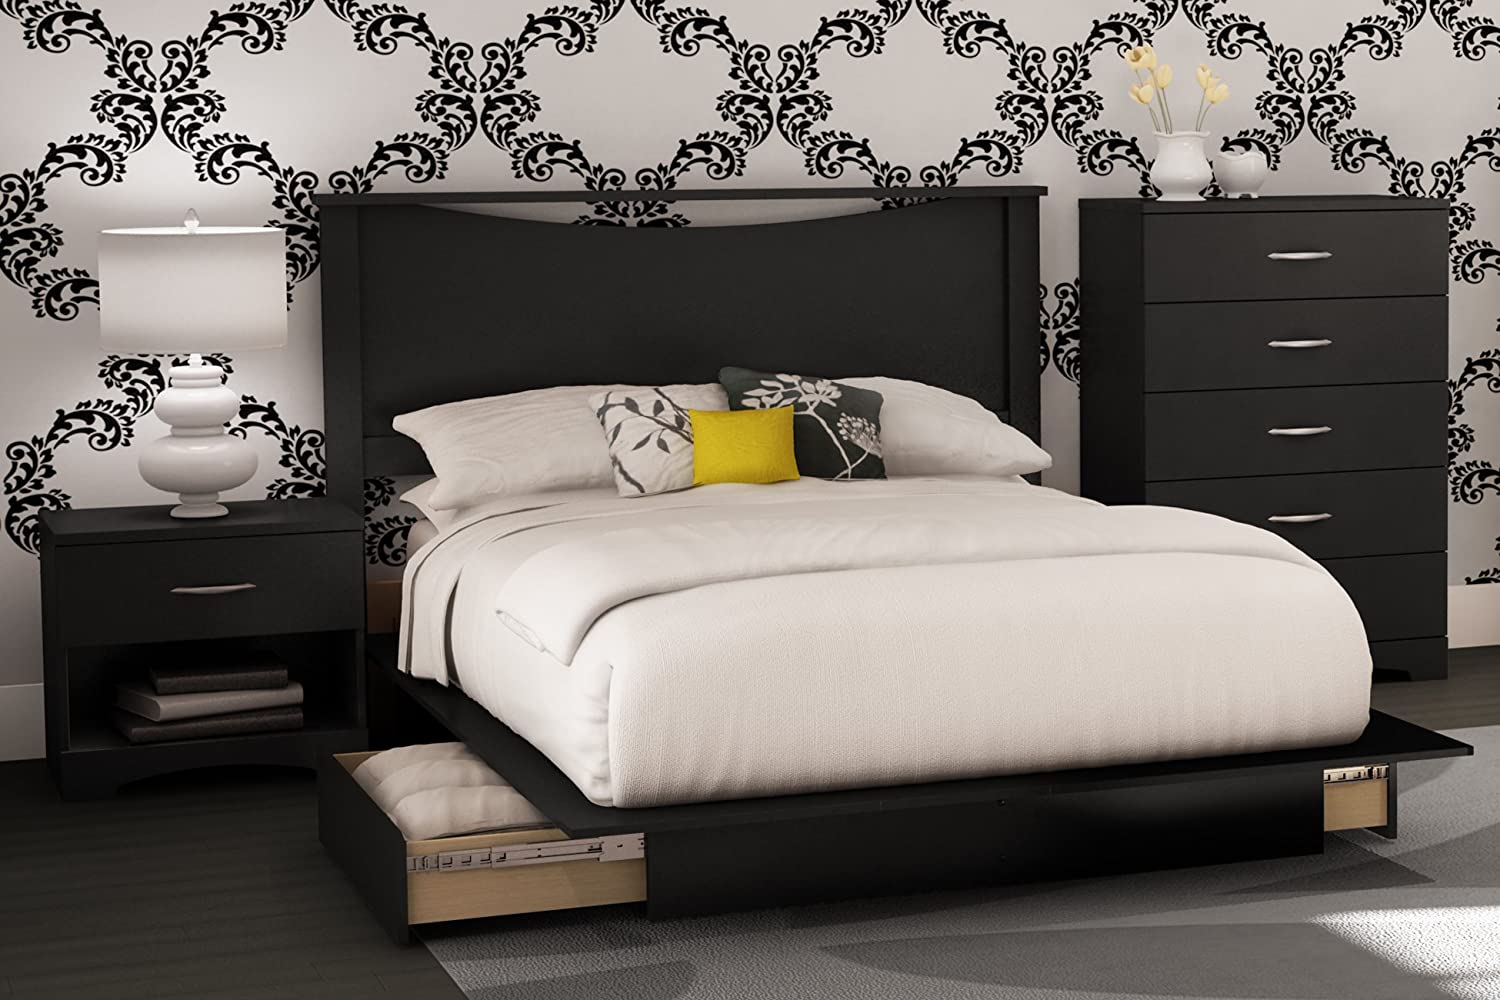 Amazon.com: South Shore Bedroom Set Step One Collection, Black, 4 ...